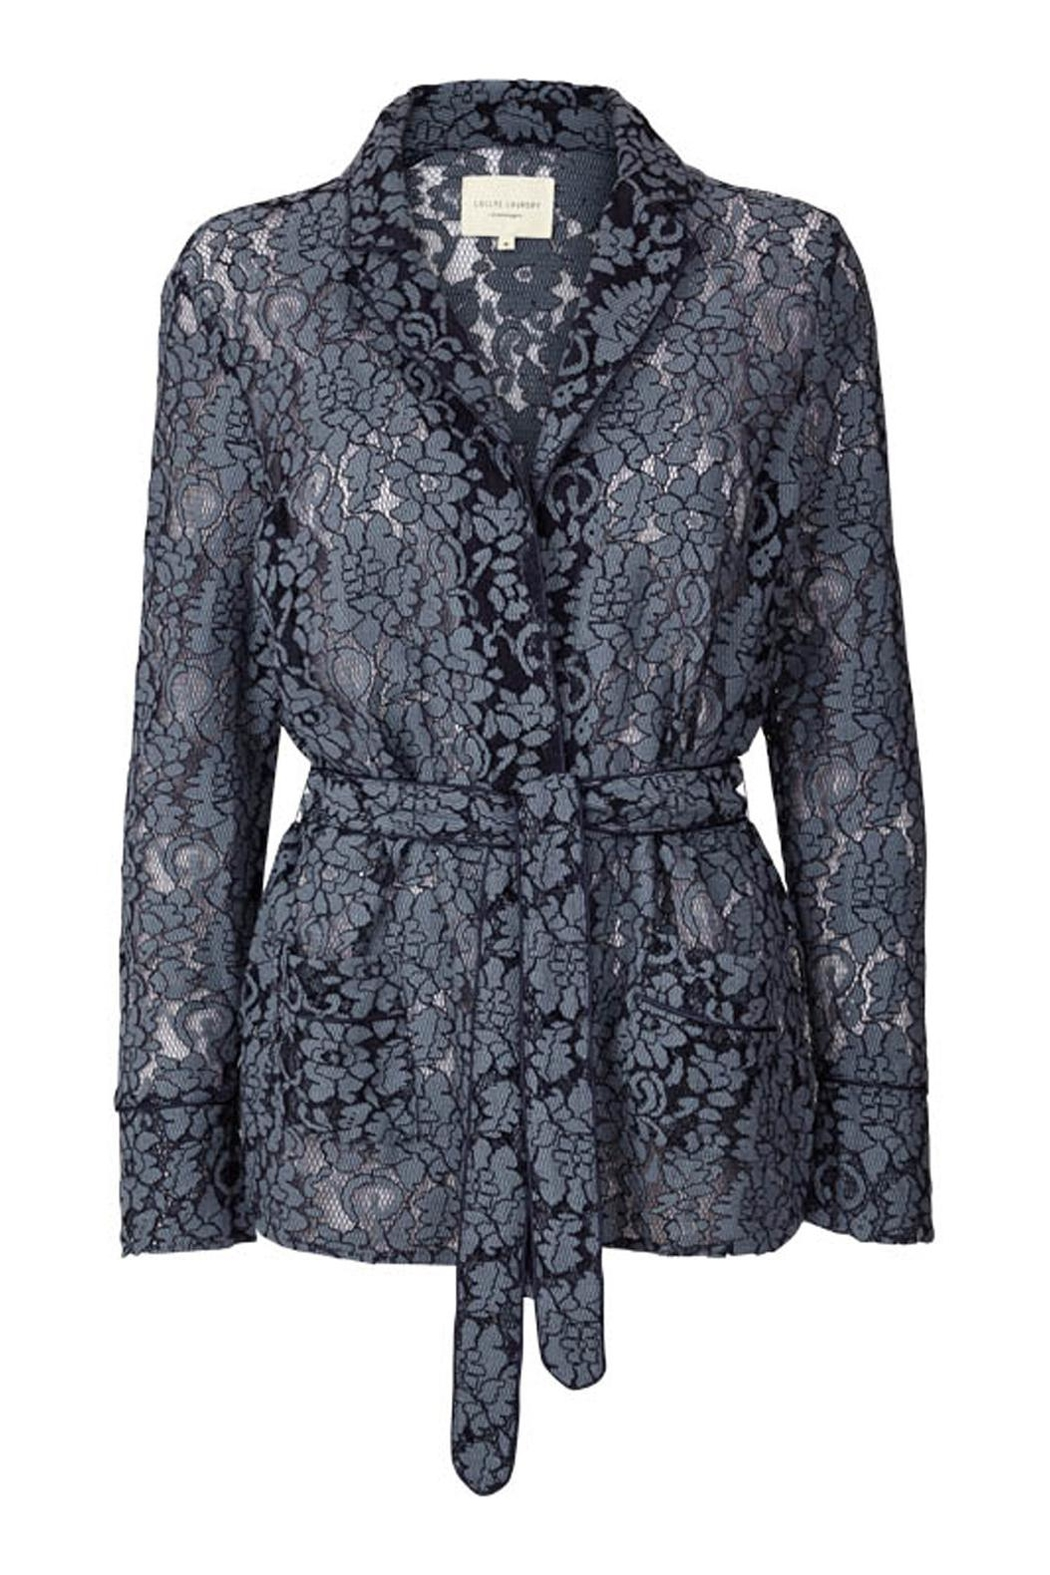 LOLLYS LAUNDRY Blue Lace Jacket - Main Image